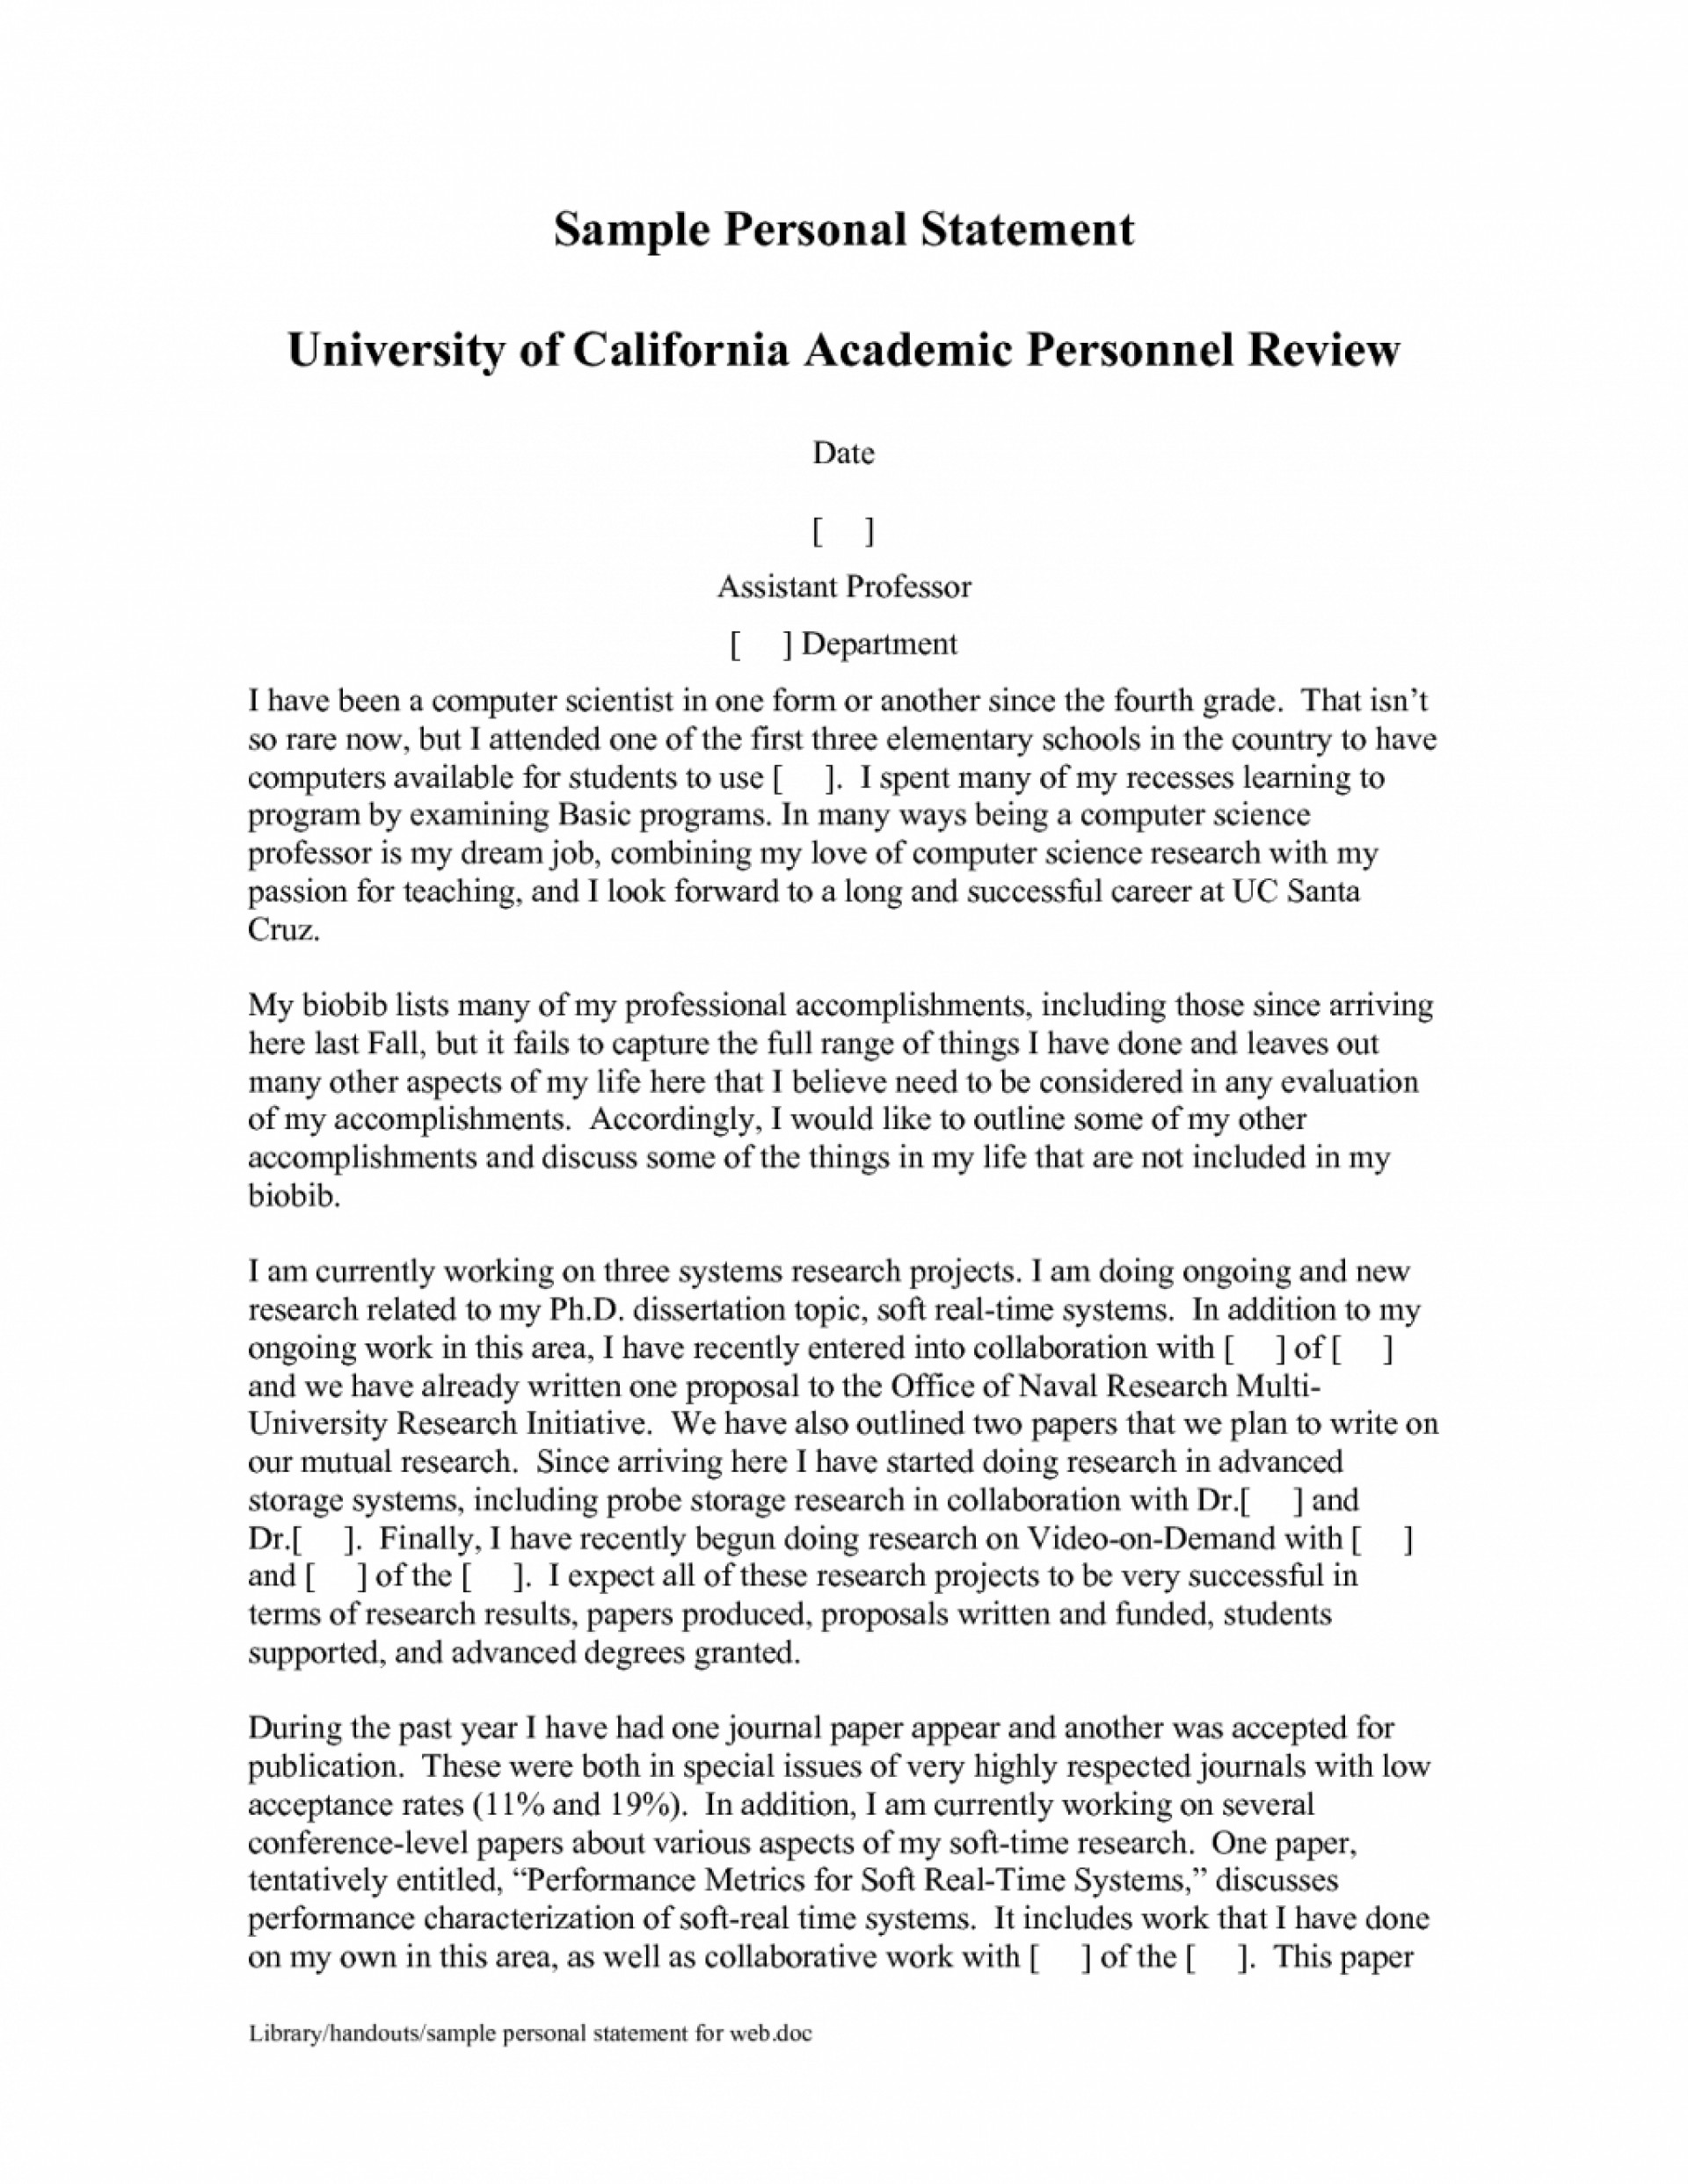 019 Harvard Business School Essays Image Ideas Template Sample Mba Entrance Writing Unit Graduate Personal 1024x1325 Archaicawful Essay Tips That Worked 1920